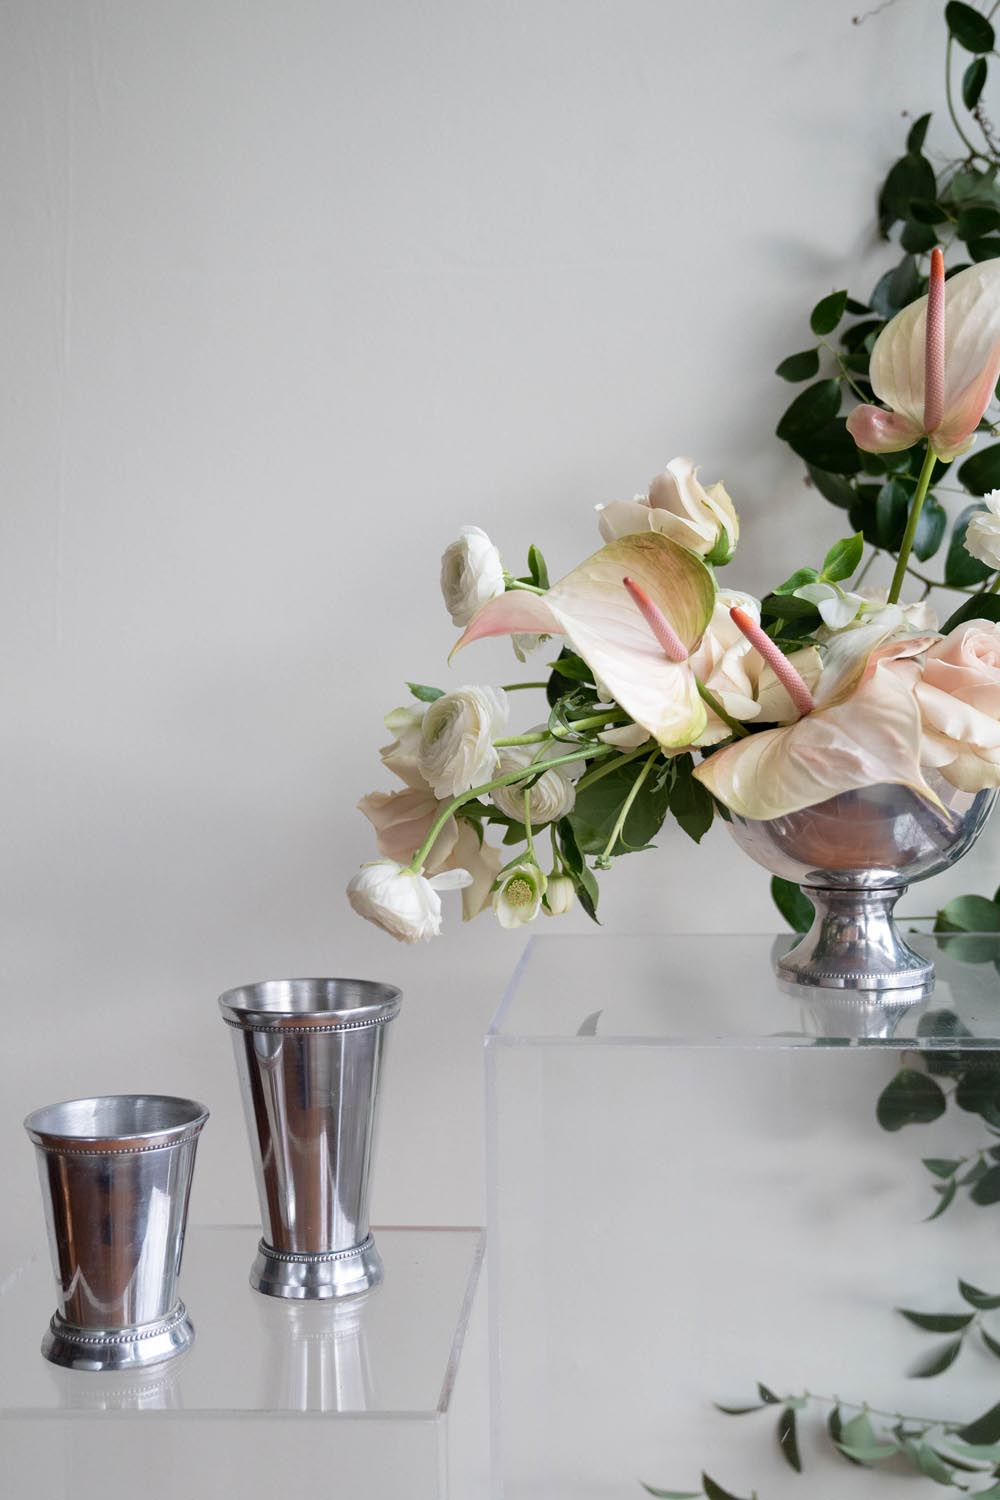 Silver mint juleps & compote vases